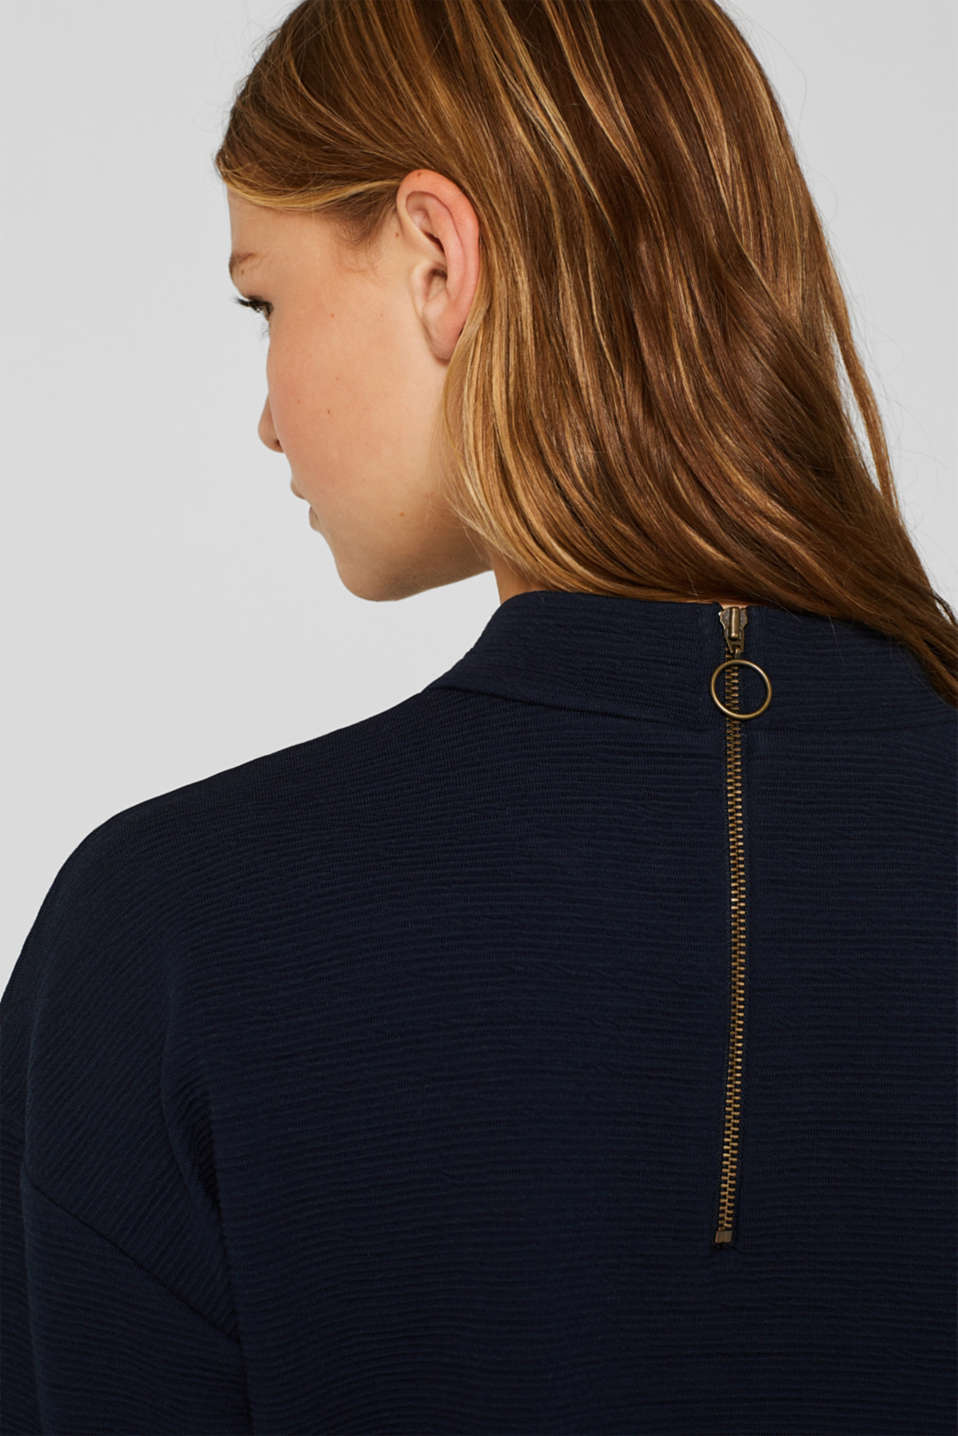 Stretch long sleeve top with velvet details, NAVY, detail image number 2